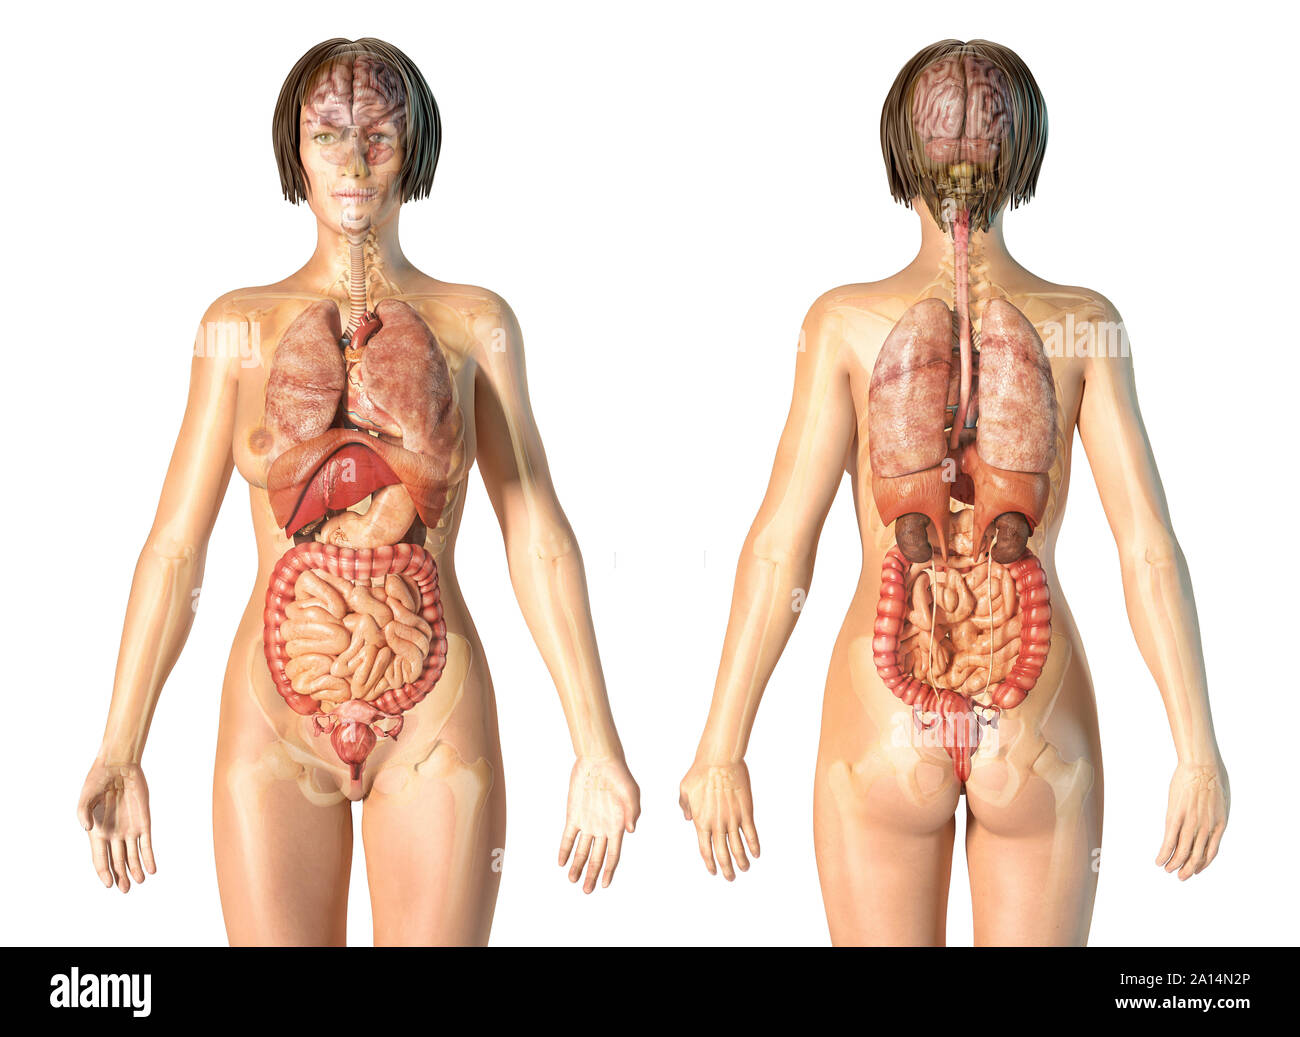 Female Anatomy High Resolution Stock Photography And Images Alamy